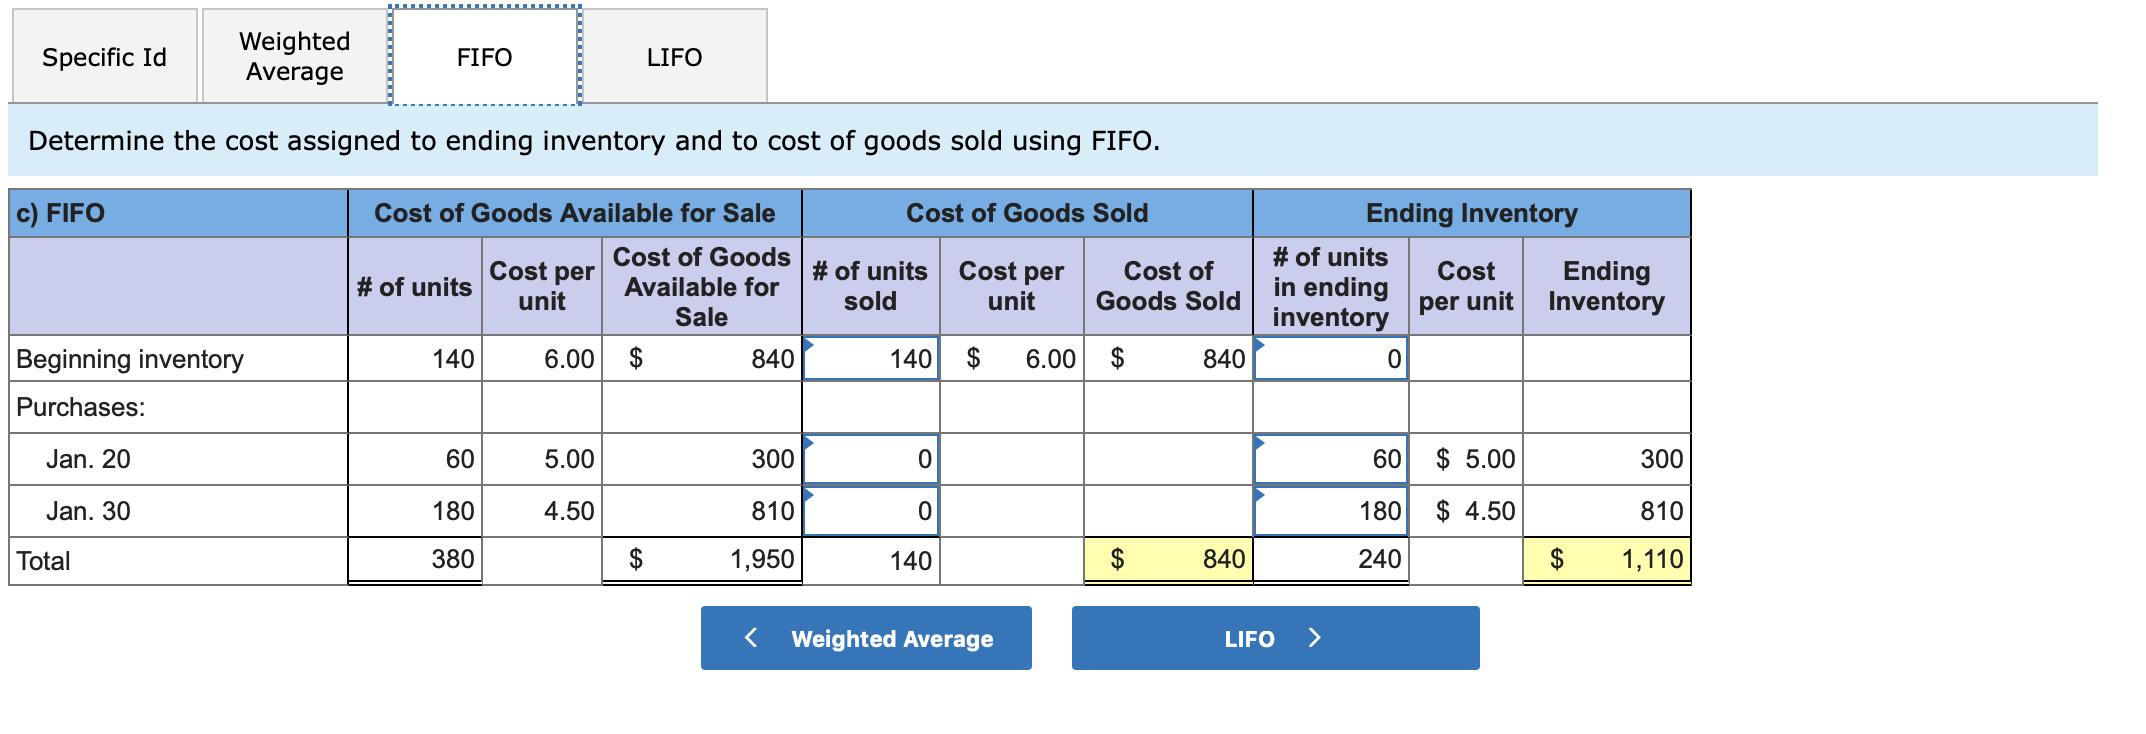 Weighted Average Specific Id LIFO FIFO Determine the cost assigned to ending inventory and to cost of goods sold using FIFO. c) FIFO Ending Inventory Cost of Goods Available for Sale Cost of Goods Sold Cost of Goods#of units # of units #of units Cost per unit Cost per Cost of Goods Sold Ending per unit Inventory Cost in ending Available for sold unit Sale inventory 6.00 $ Beginning inventory 140 $ $ 6.00 140 840 840 Purchases: 5.00 Jan. 20 60 5.00 300 60 300 4.50 Jan. 30 180 810 180 810 4.50 380 $ 1,110 1,950 840 240 Total 140 $ $ Weighted Average LIFO EA